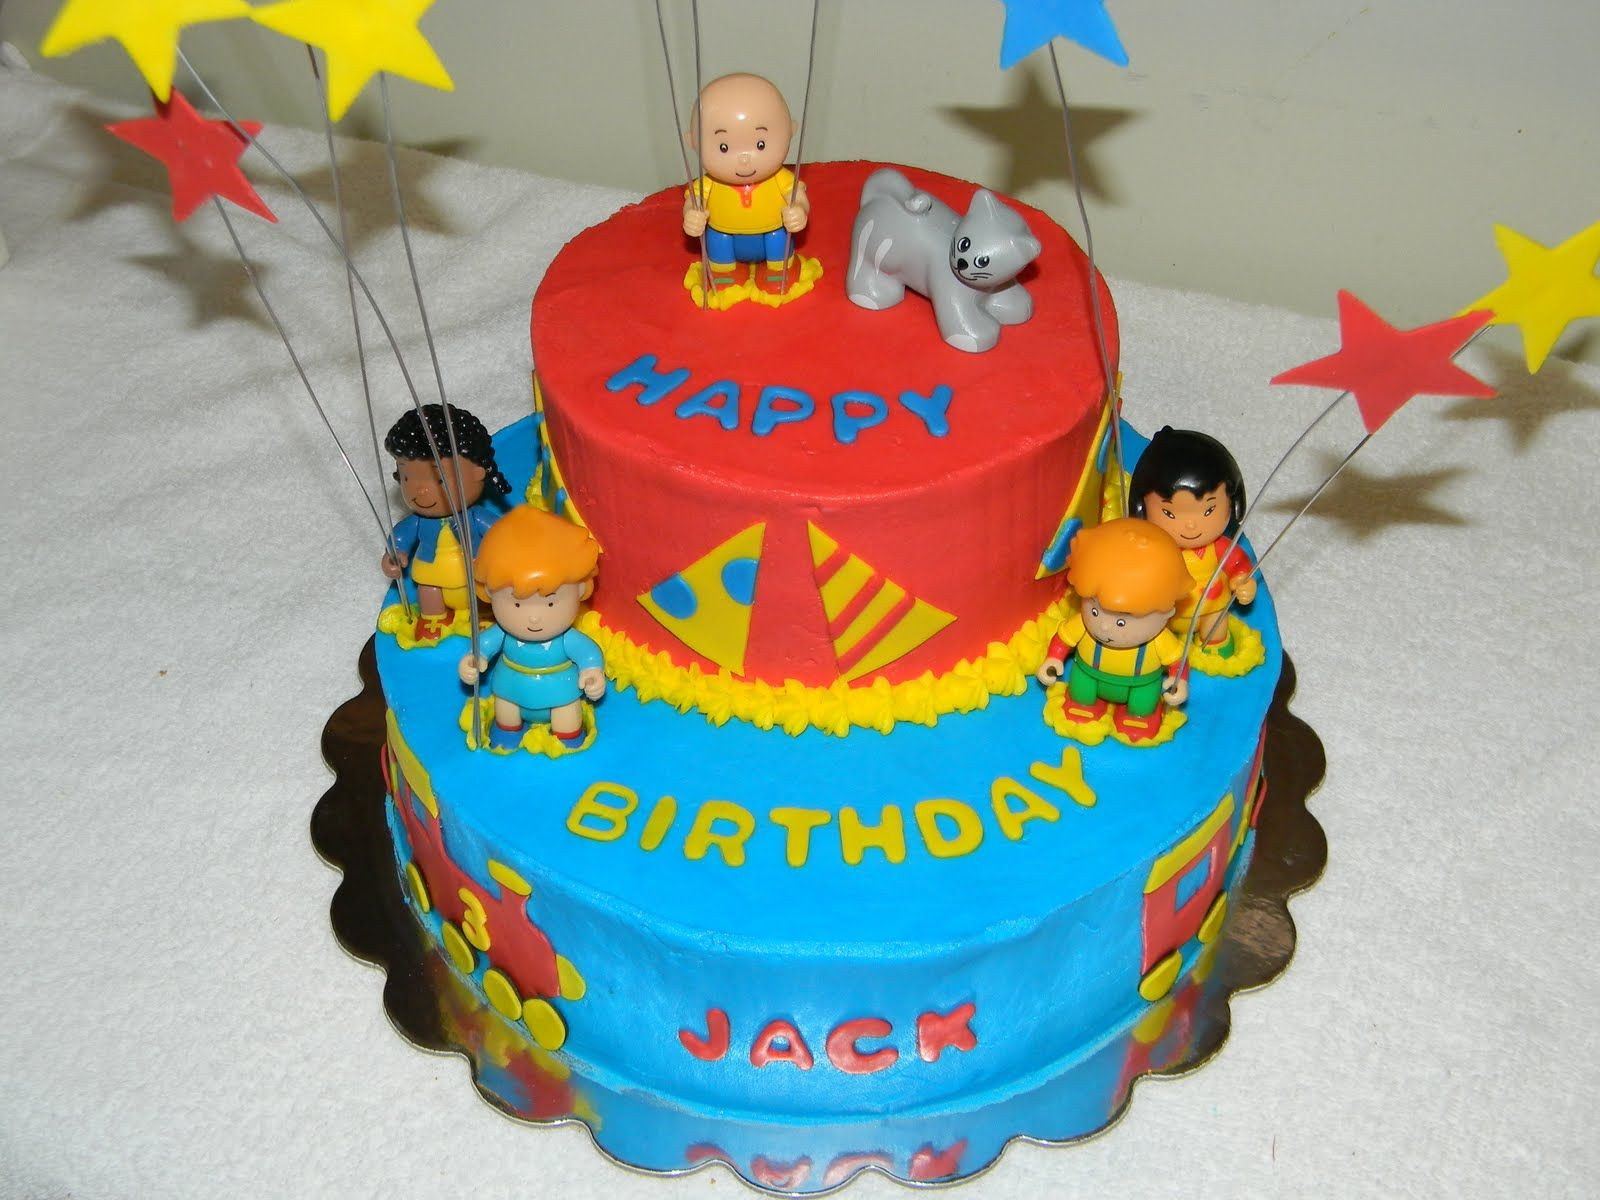 Birthday Cakes For Boys With Name ~ Another cute caillou cake! great ideas! presents for colton